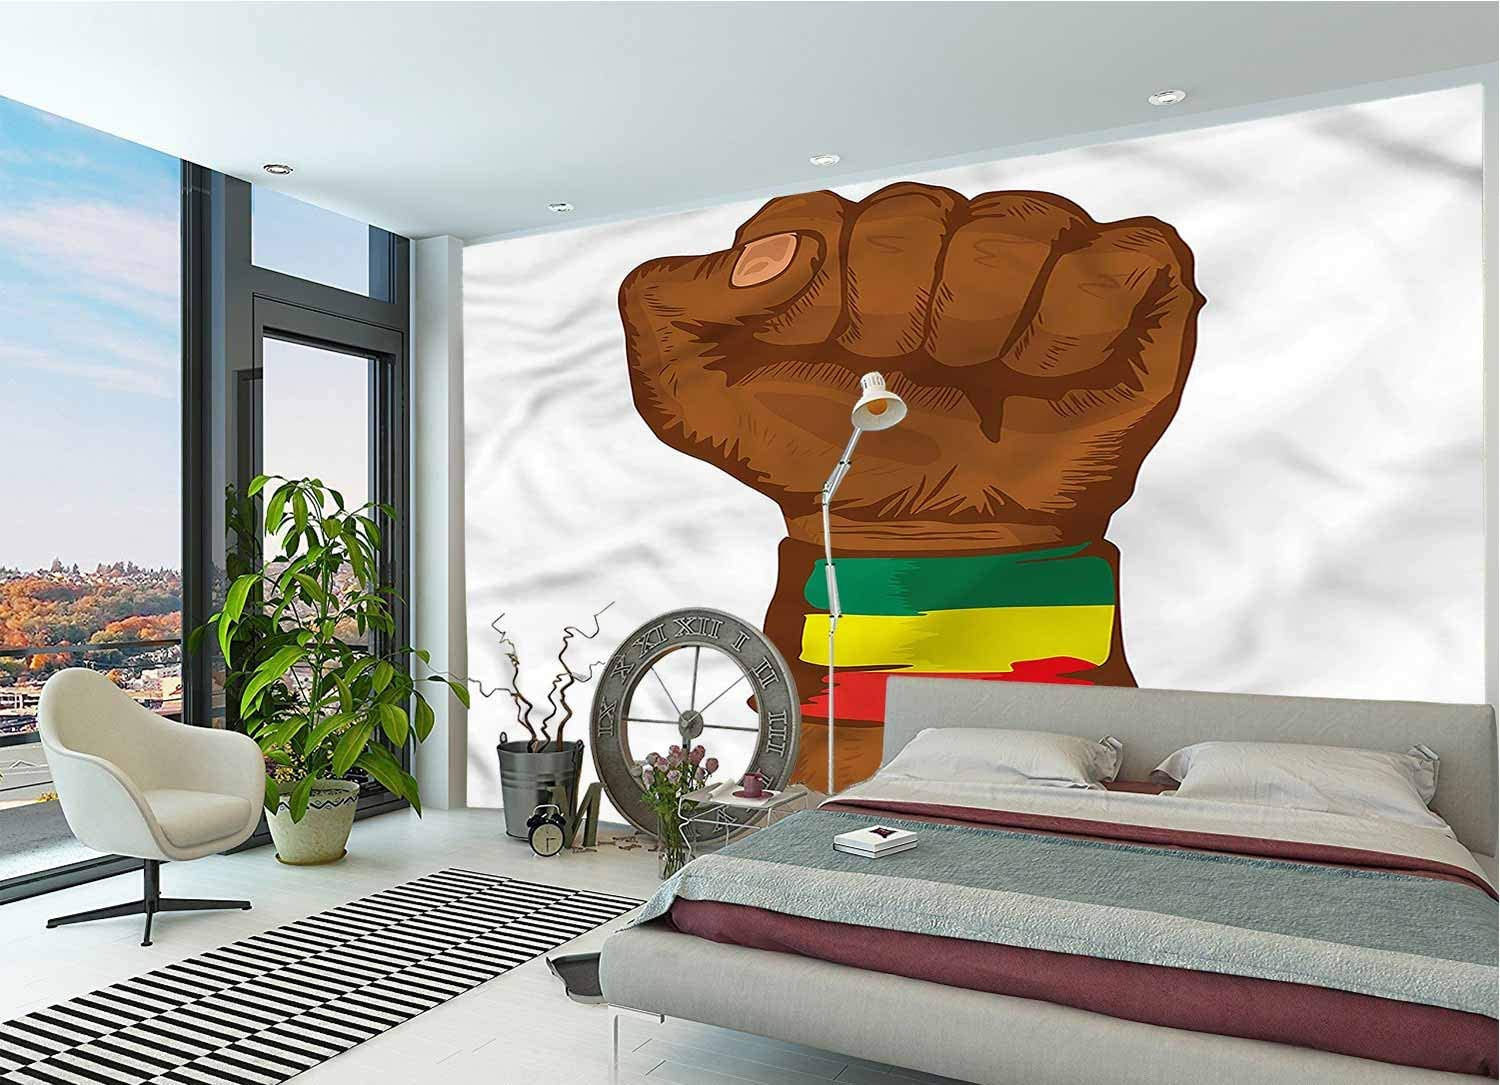 LCGGDB Rasta Large Wall Mural,Ethiopian Flag Colors Removable Large Sticker Foil Wall Decor for Office Kids Bedroom Nursery Family Decor-78x55 Inch